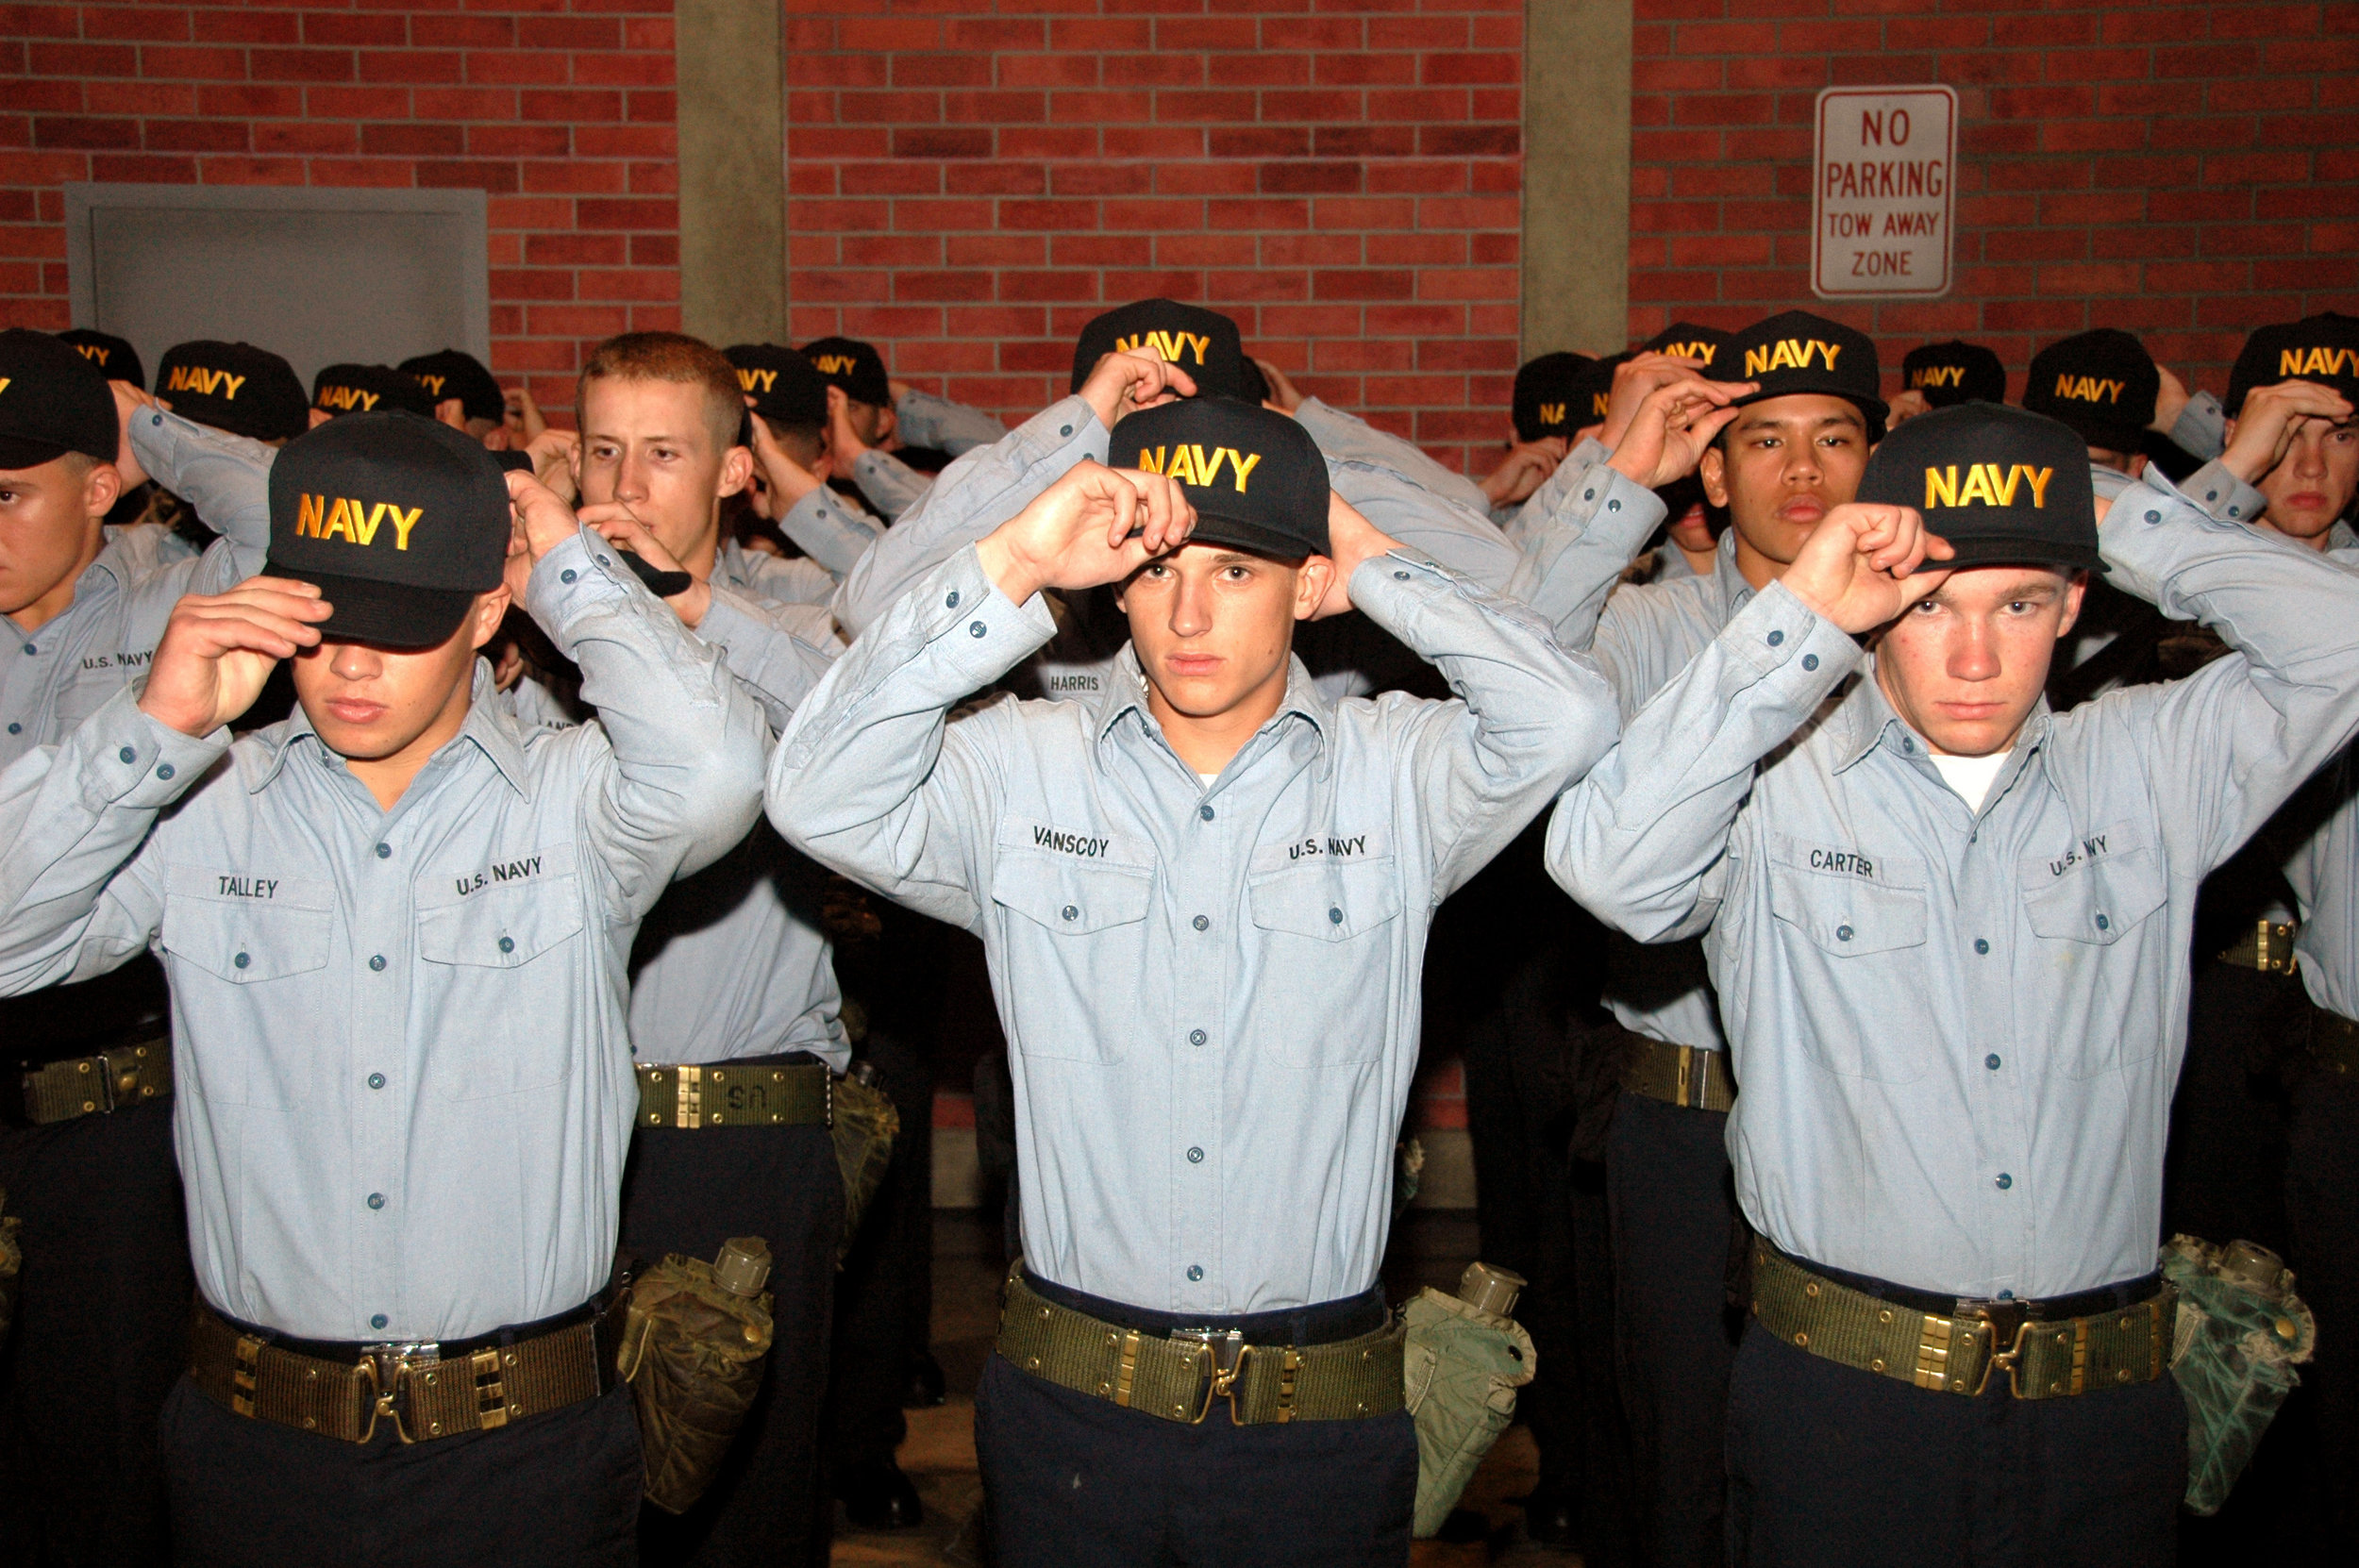 U.S._Navy_recruits_from_Division_253_place_Navy_ball_caps_on_their_heads_during_a_capping_ceremony_after_ending_training_for_Battle_Stations_21_onboard_USS_Trayer_(BST_21)_at_Naval_Station_Great_Lakes,_Ill._070814-N-IK959-071.jpg